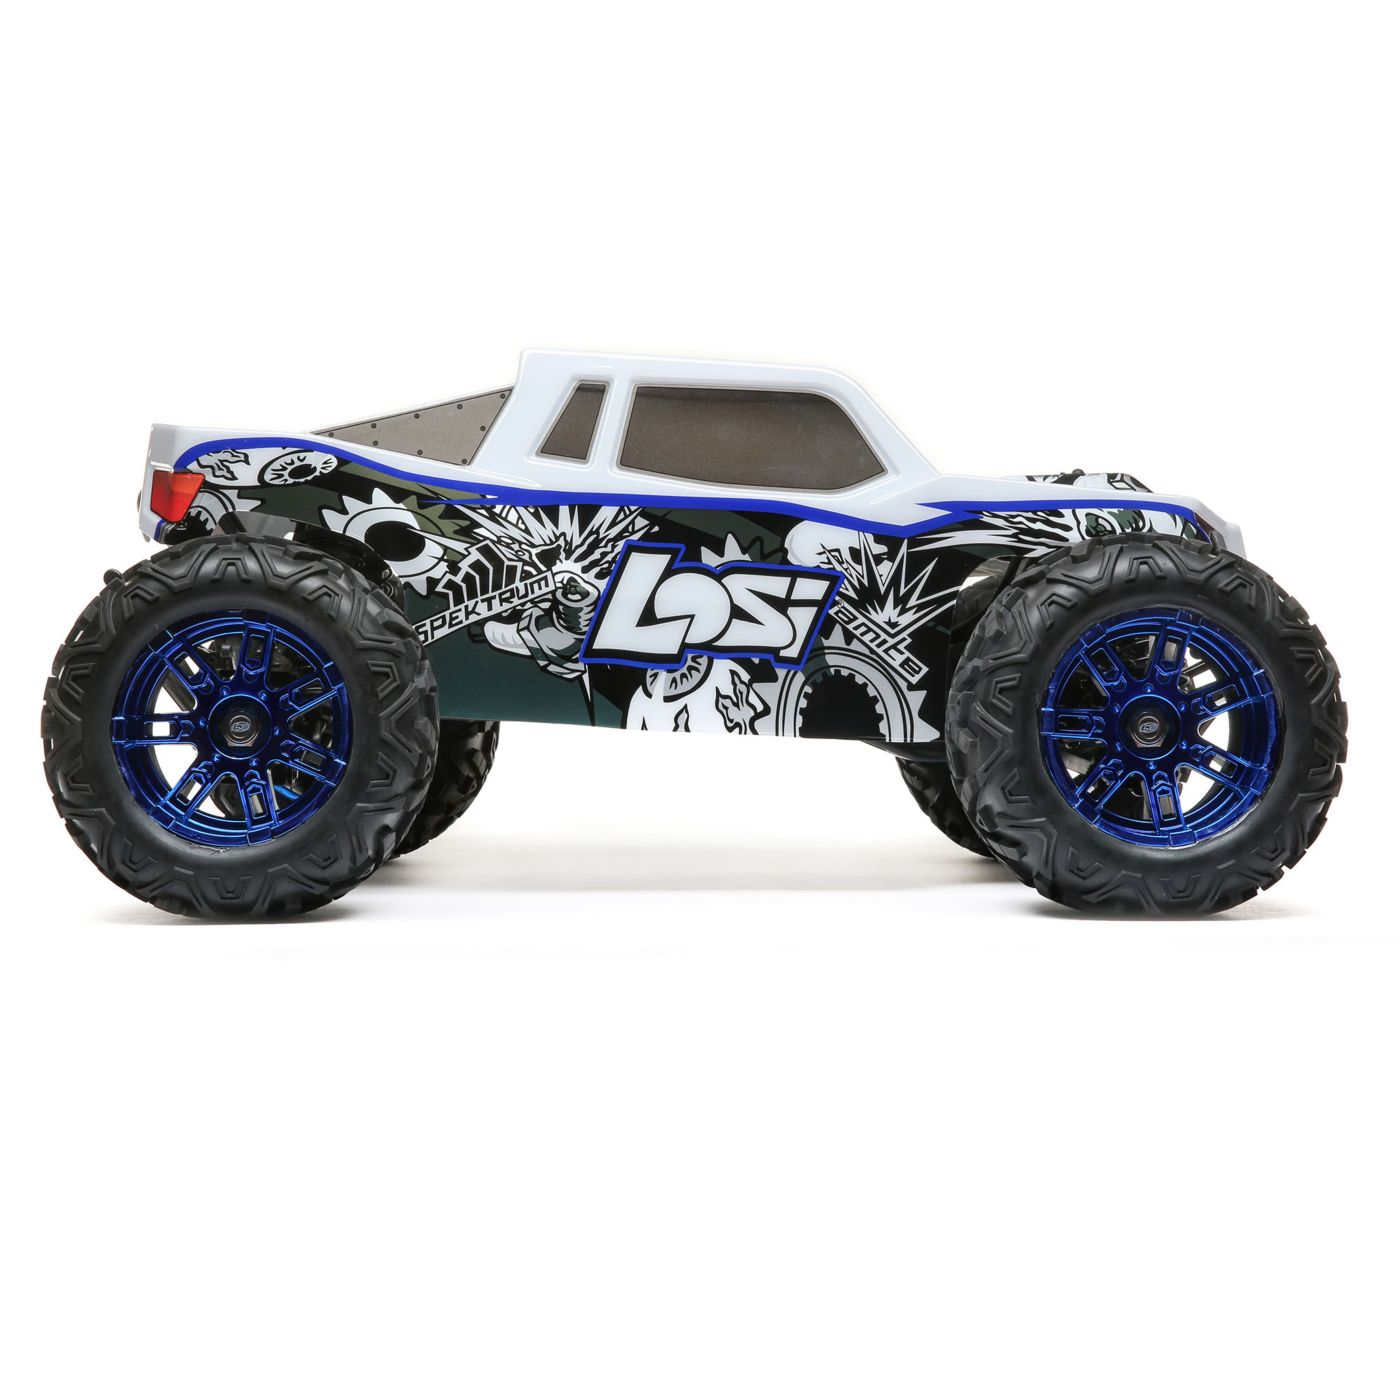 Losi LST 3XL E RC Monster Truck Side